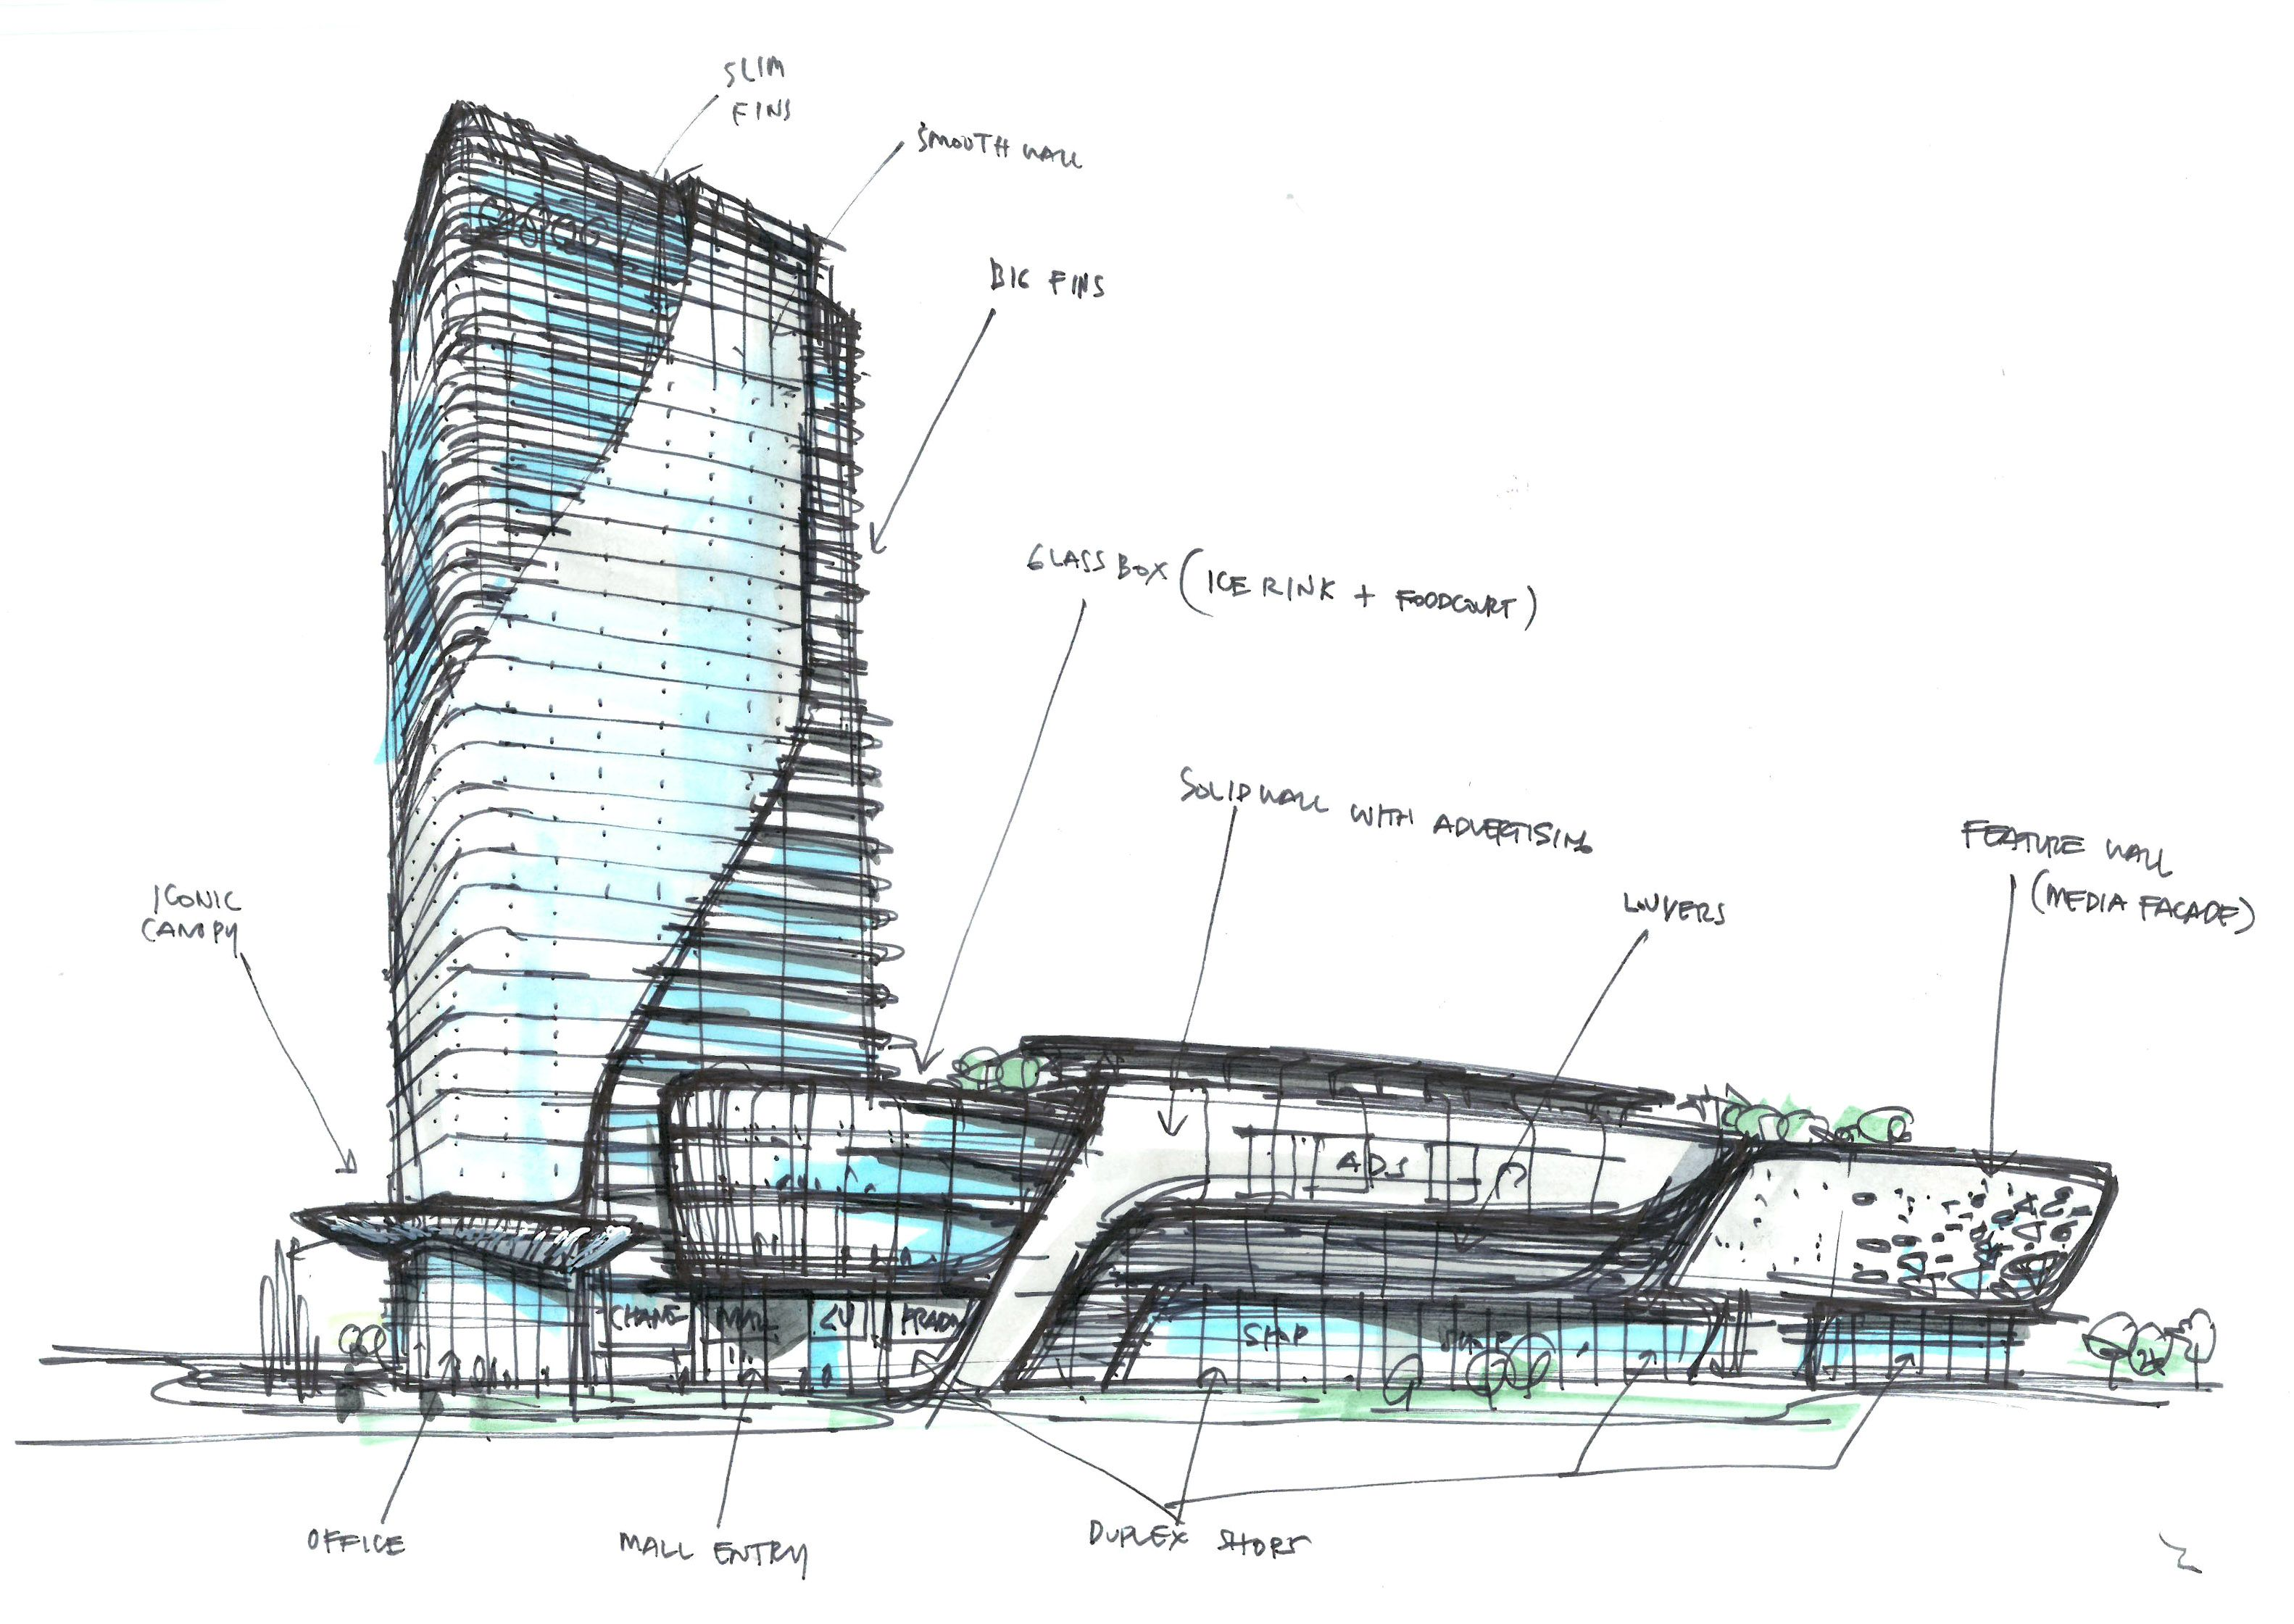 Mixed use concept i randy carizo architecture sketches l for Concept of space in architecture